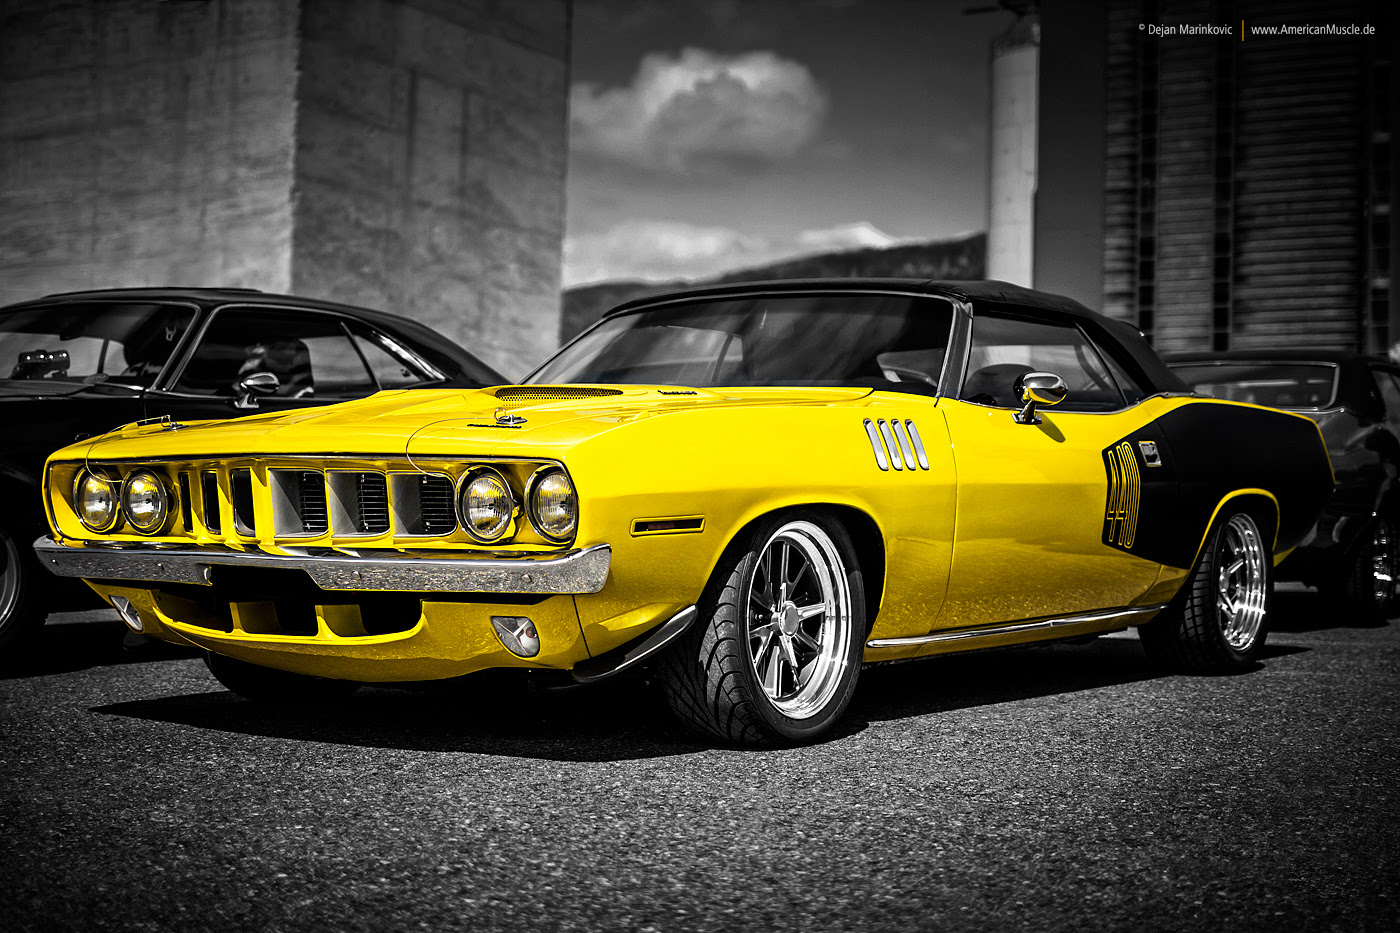 1971 Plymouth 'Cuda by AmericanMuscle on DeviantArt